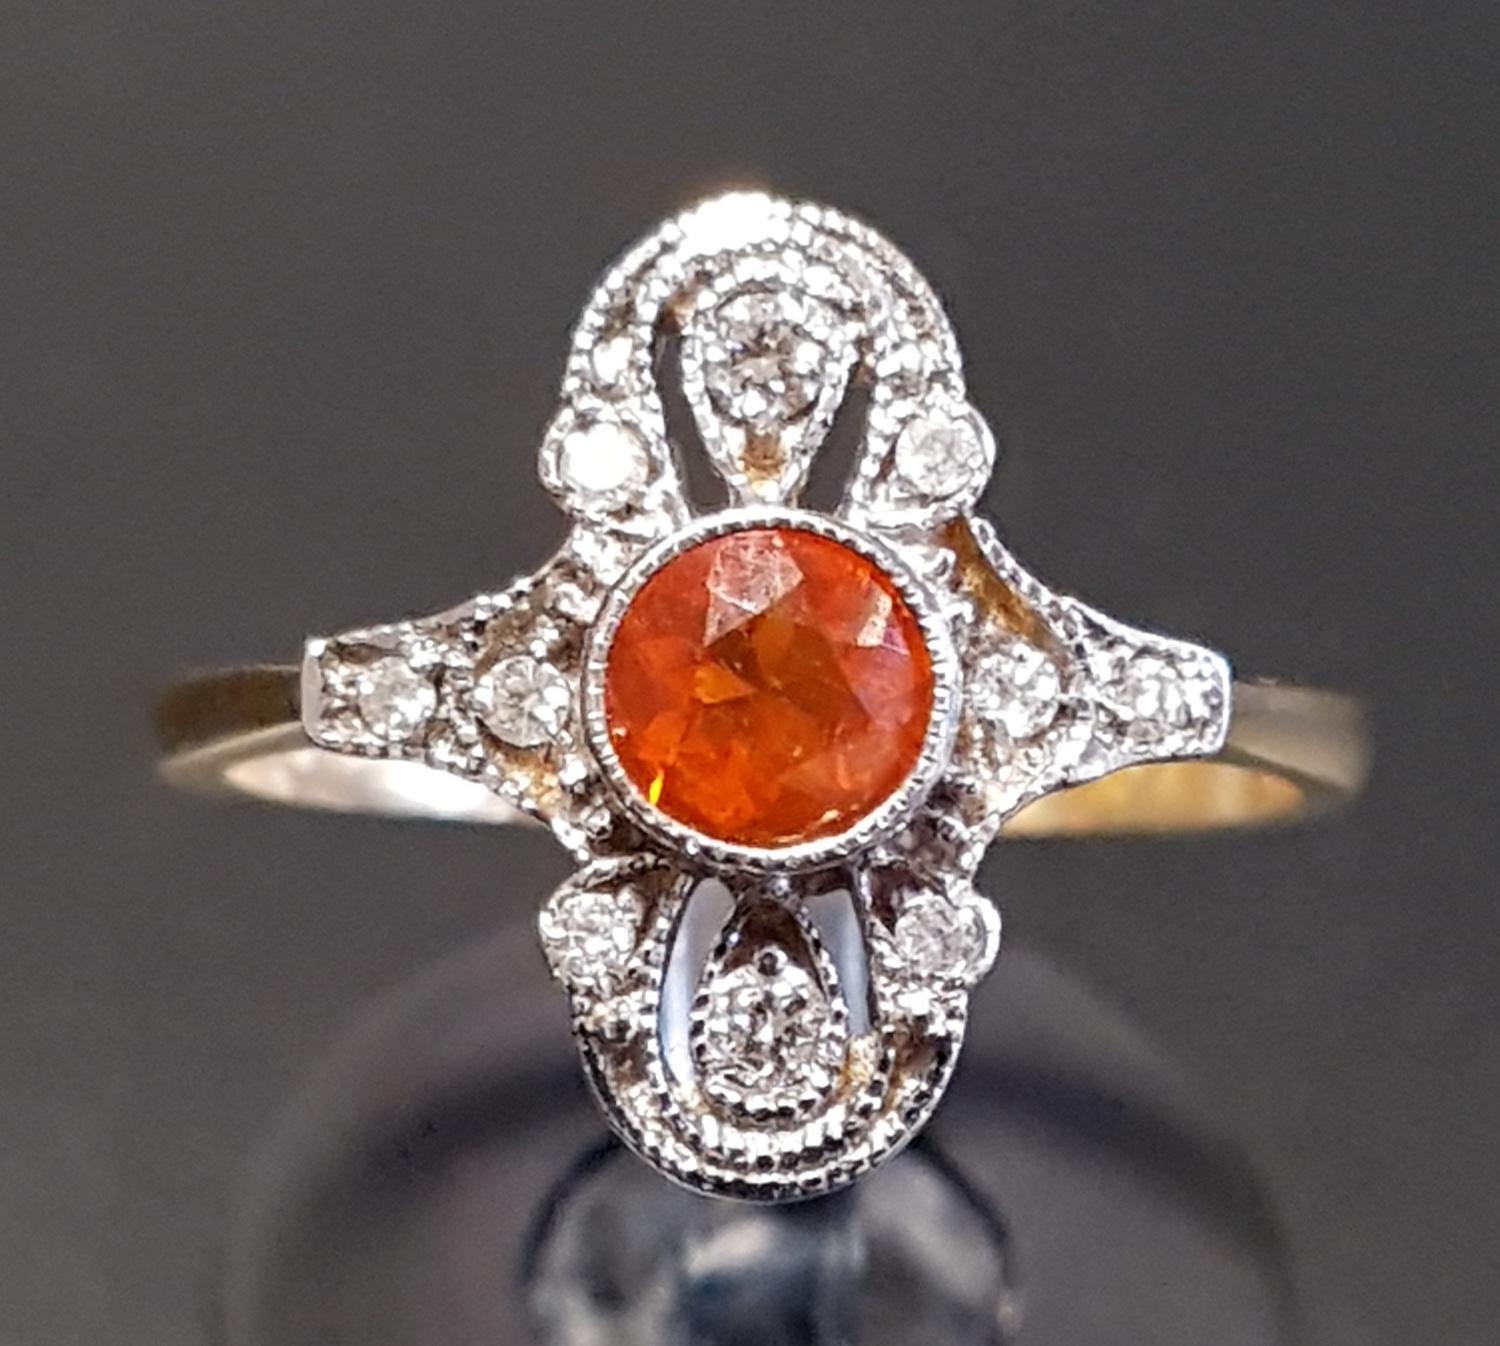 Lot 7 - ATTRACTIVE ART DECO STYLE FIRE OPAL AND DIAMOND PLAQUE RING the central round cut fire opal in multi